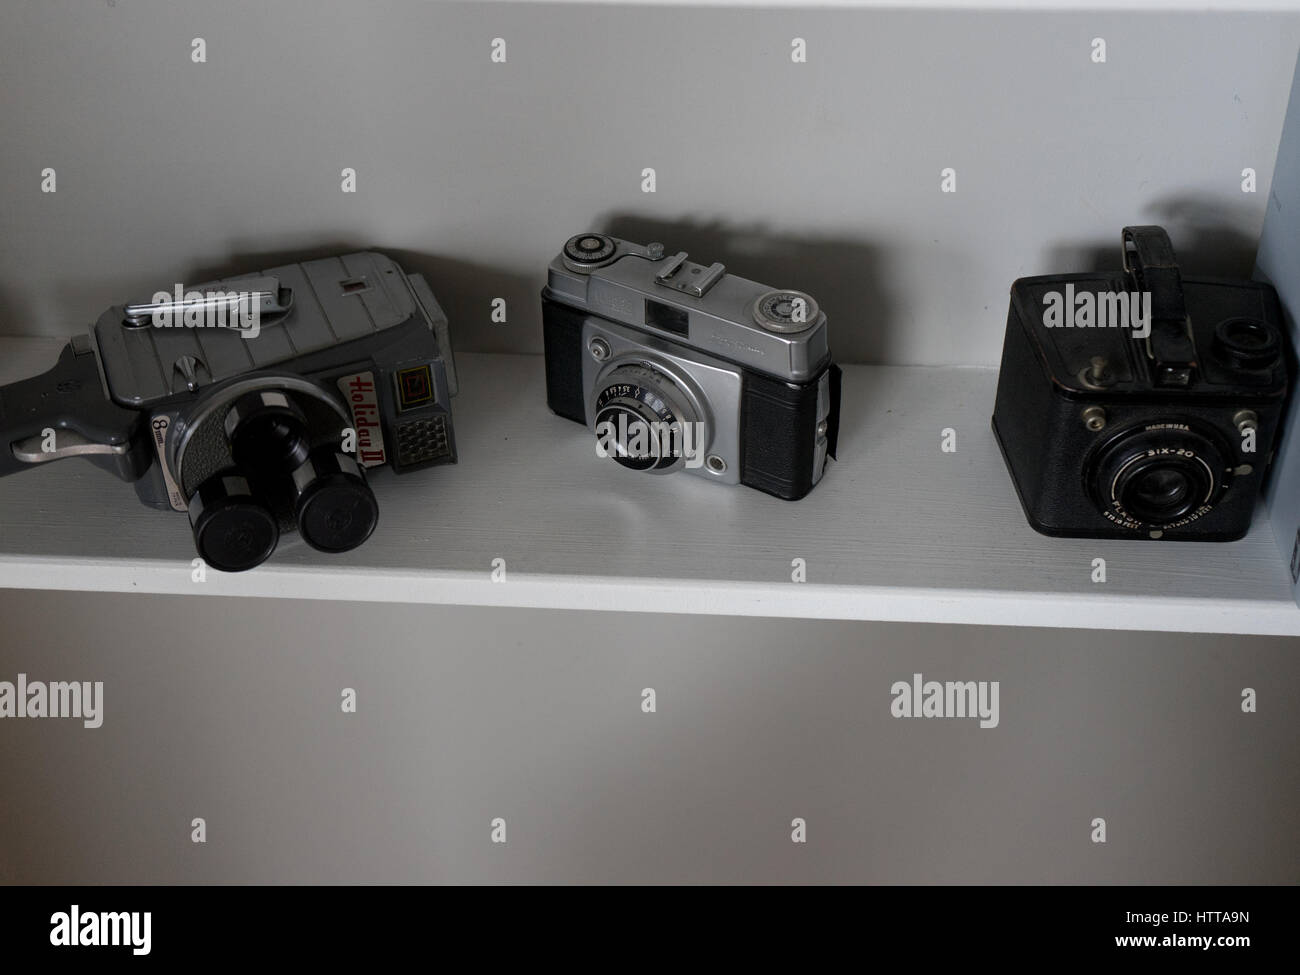 3 cameras of yester-year - Stock Image